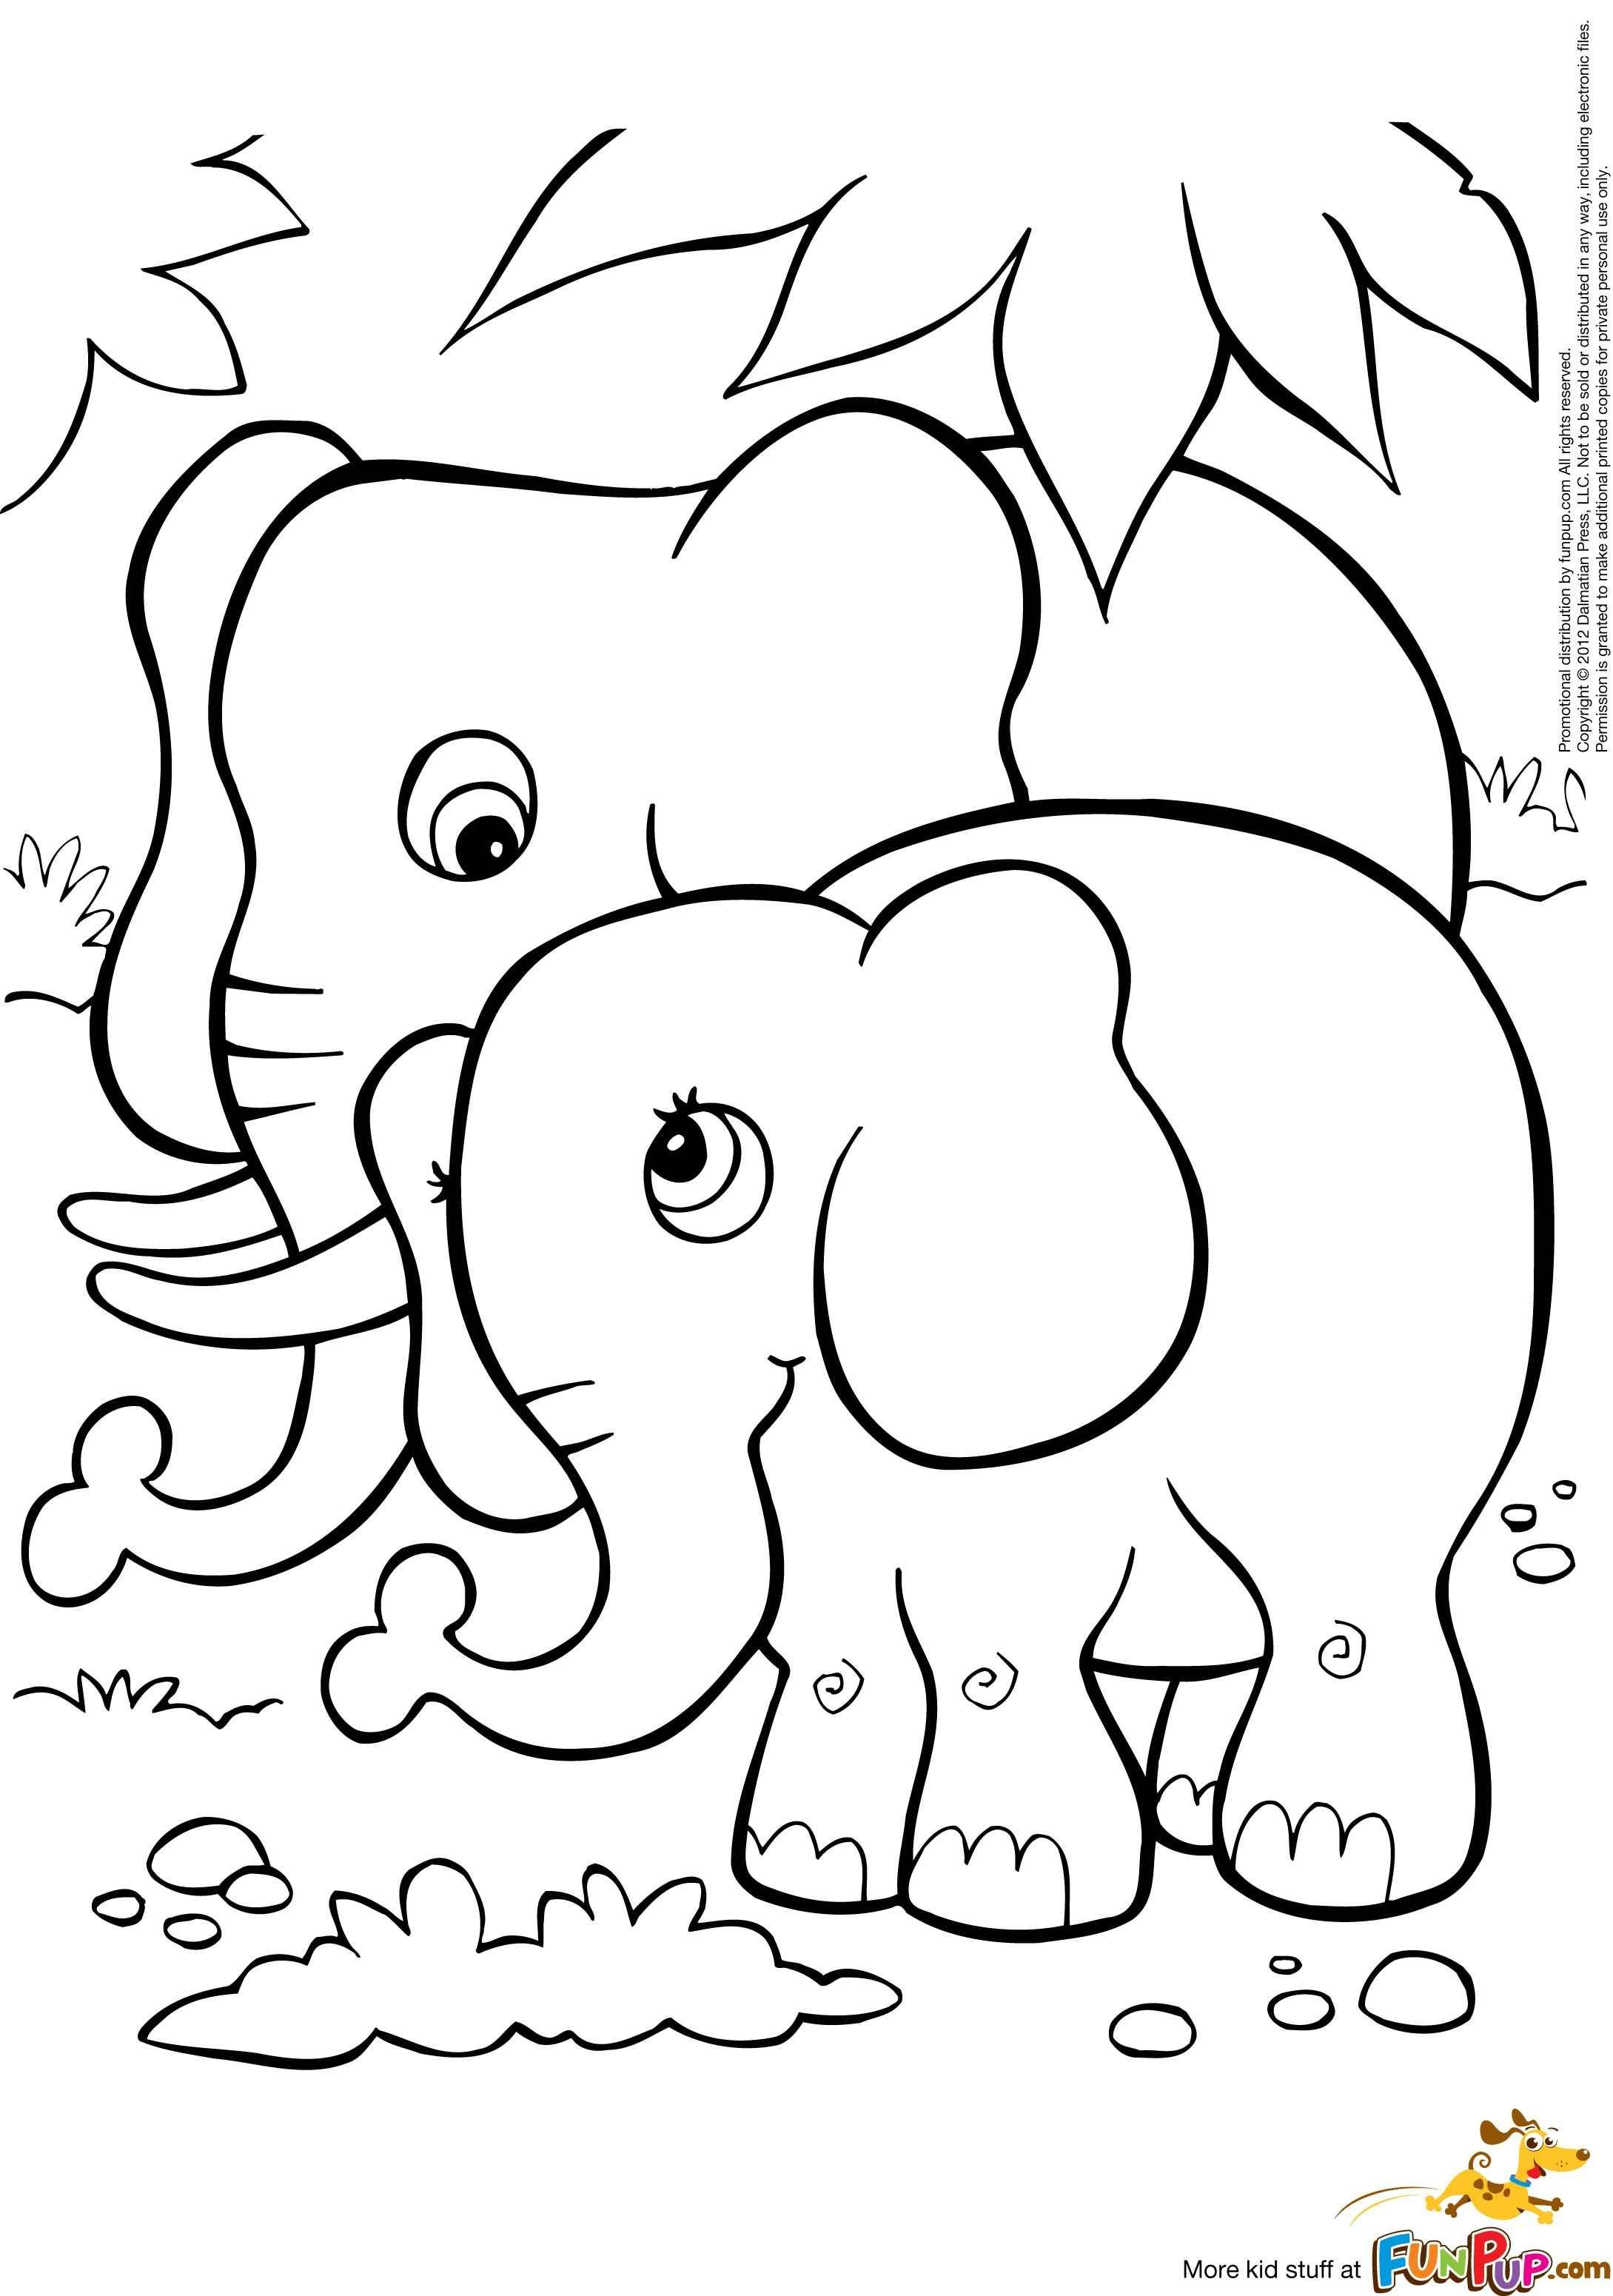 2179x3101 Cute Baby Elephant Coloring Pages